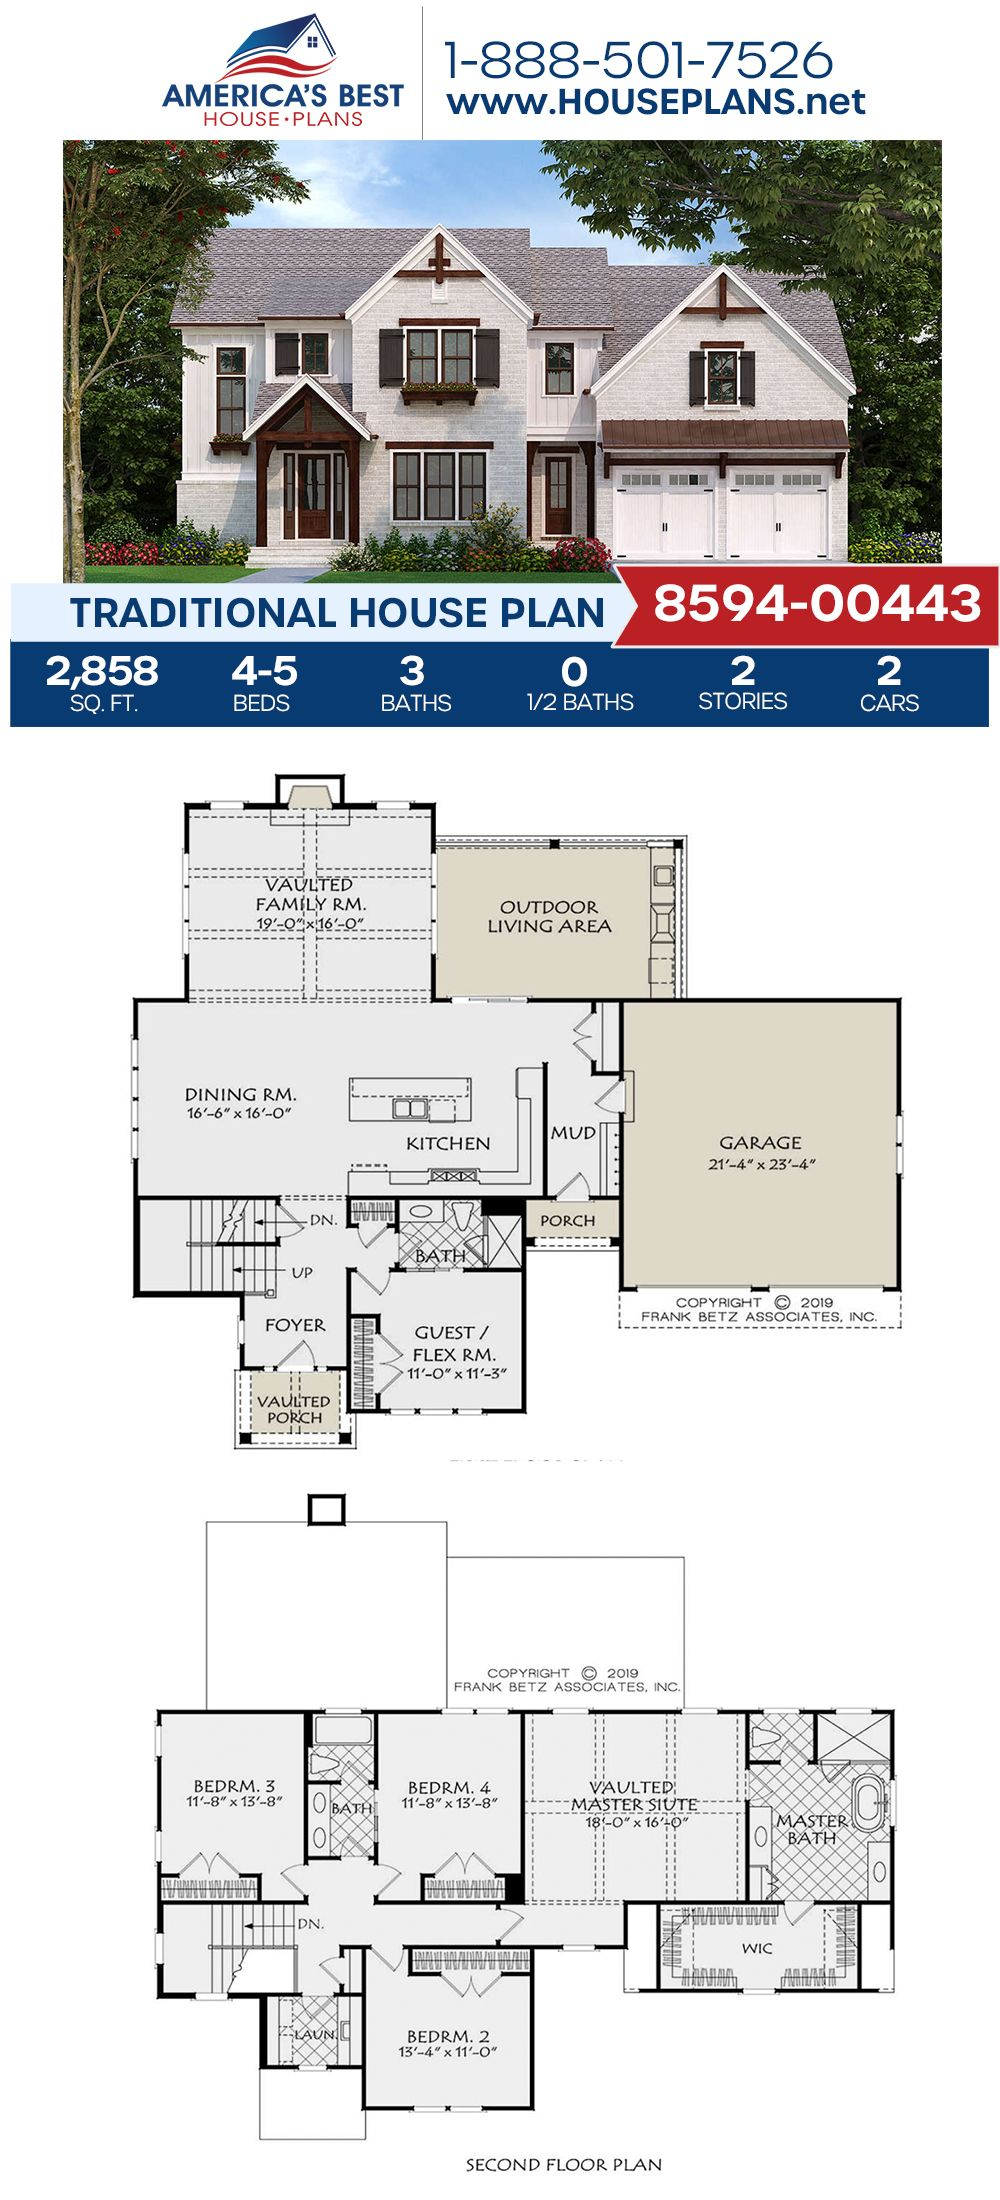 House Plan 8594 00443 Traditional Plan 2 858 Square Feet 4 5 Bedrooms 3 Bathrooms Traditional House Plan Dream House Plans House Plans